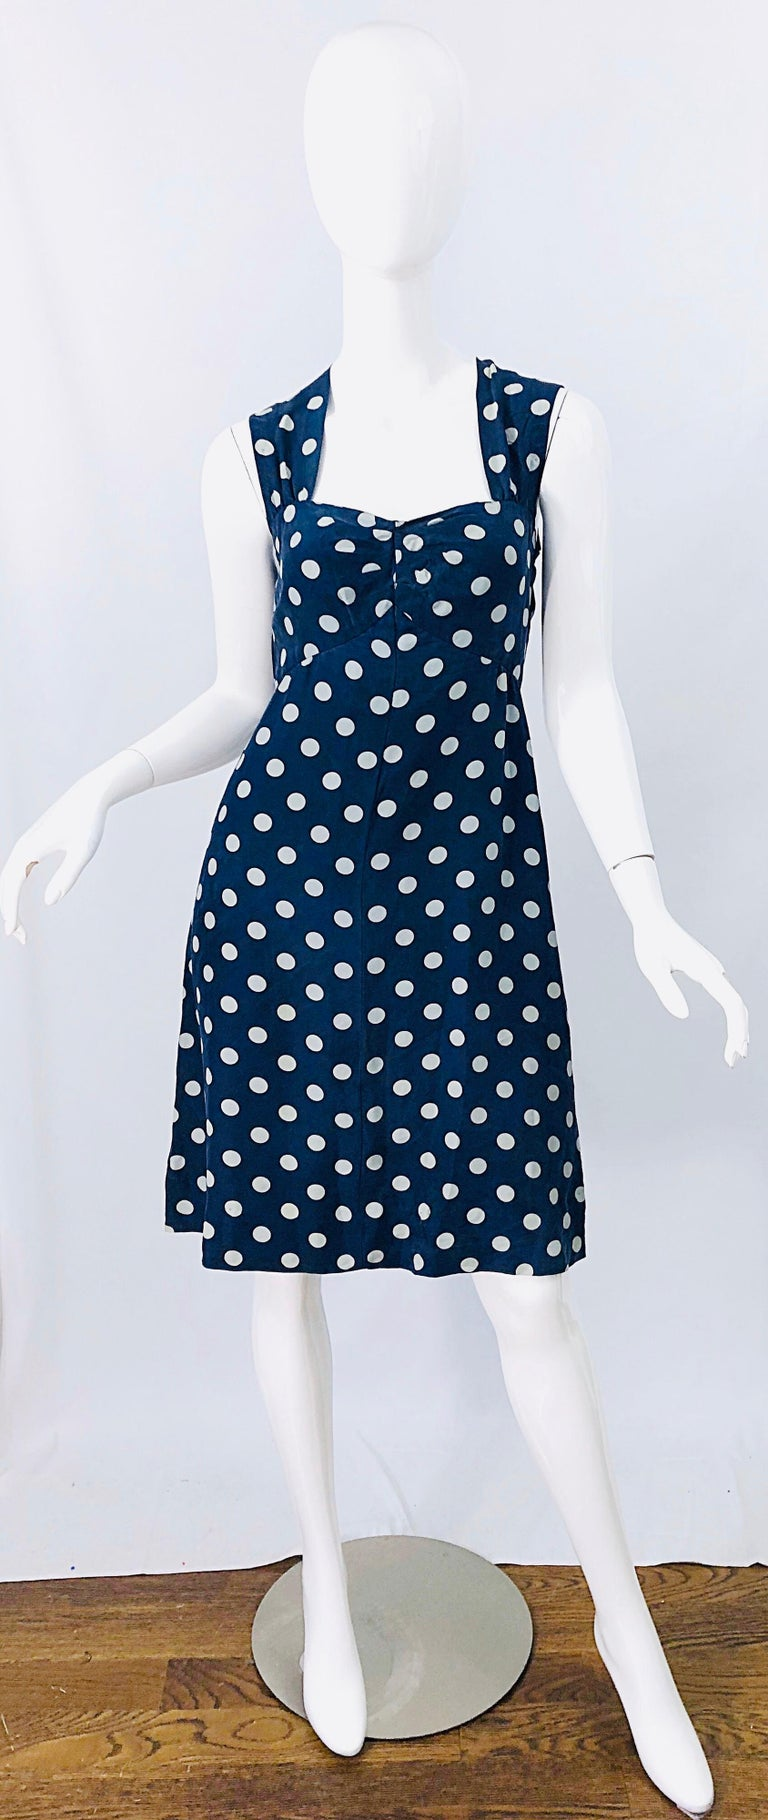 Vintage Yves Saint Laurent 1980s Navy Blue + White Polka Dot Silk 80s Dress YSL For Sale 8